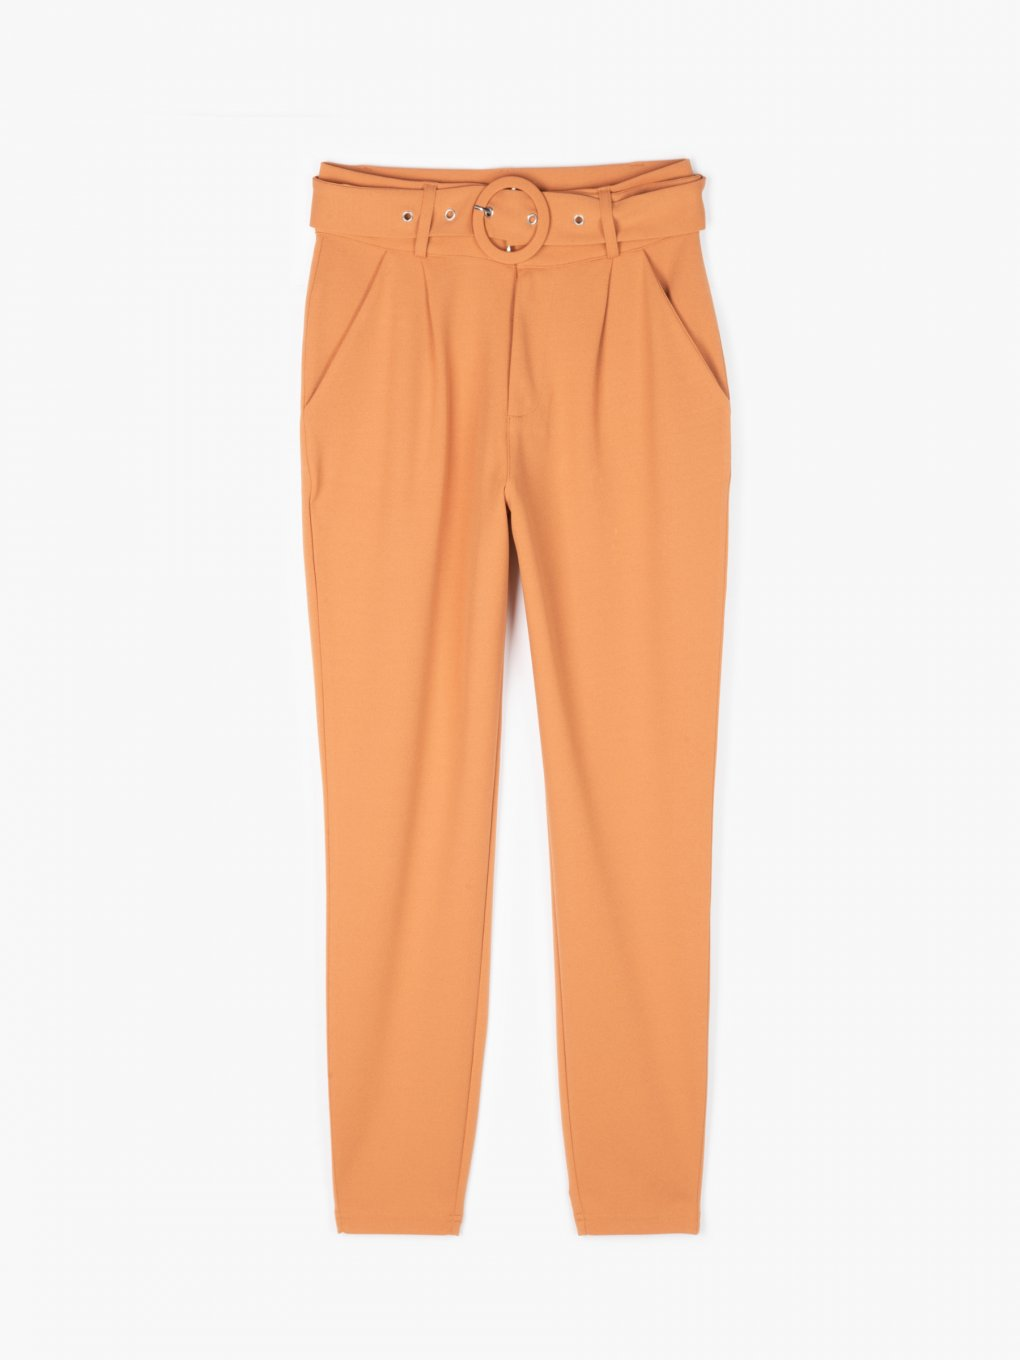 Hight waist belted trousers